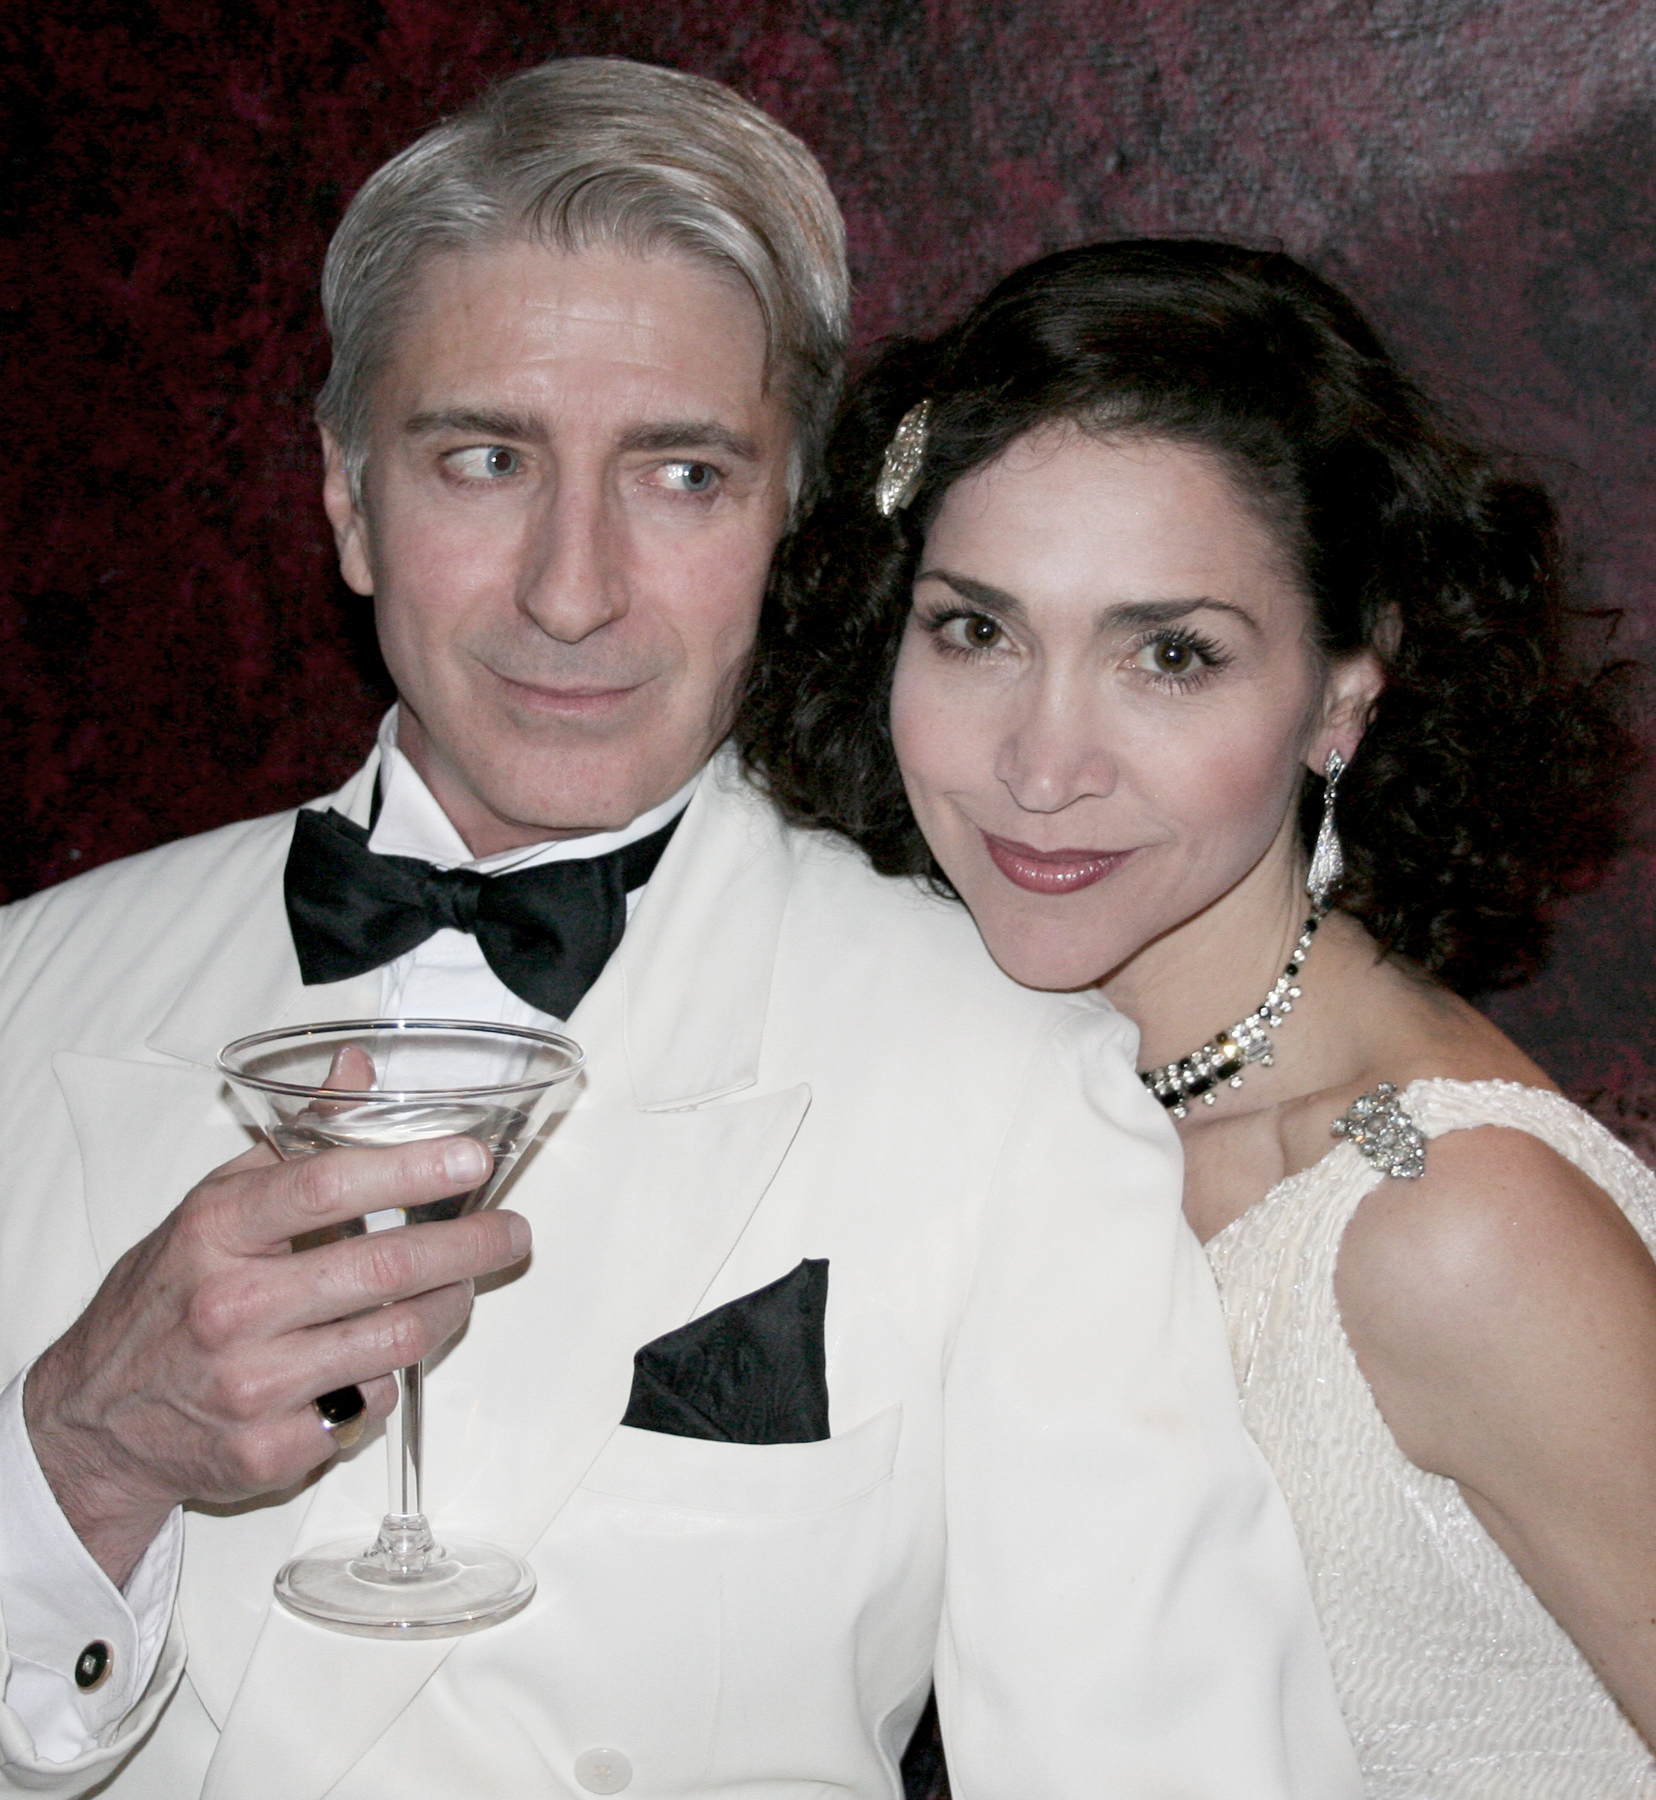 Stasha Surdyke stars with Lenny Von Dohlen in PRIVATE LIVES